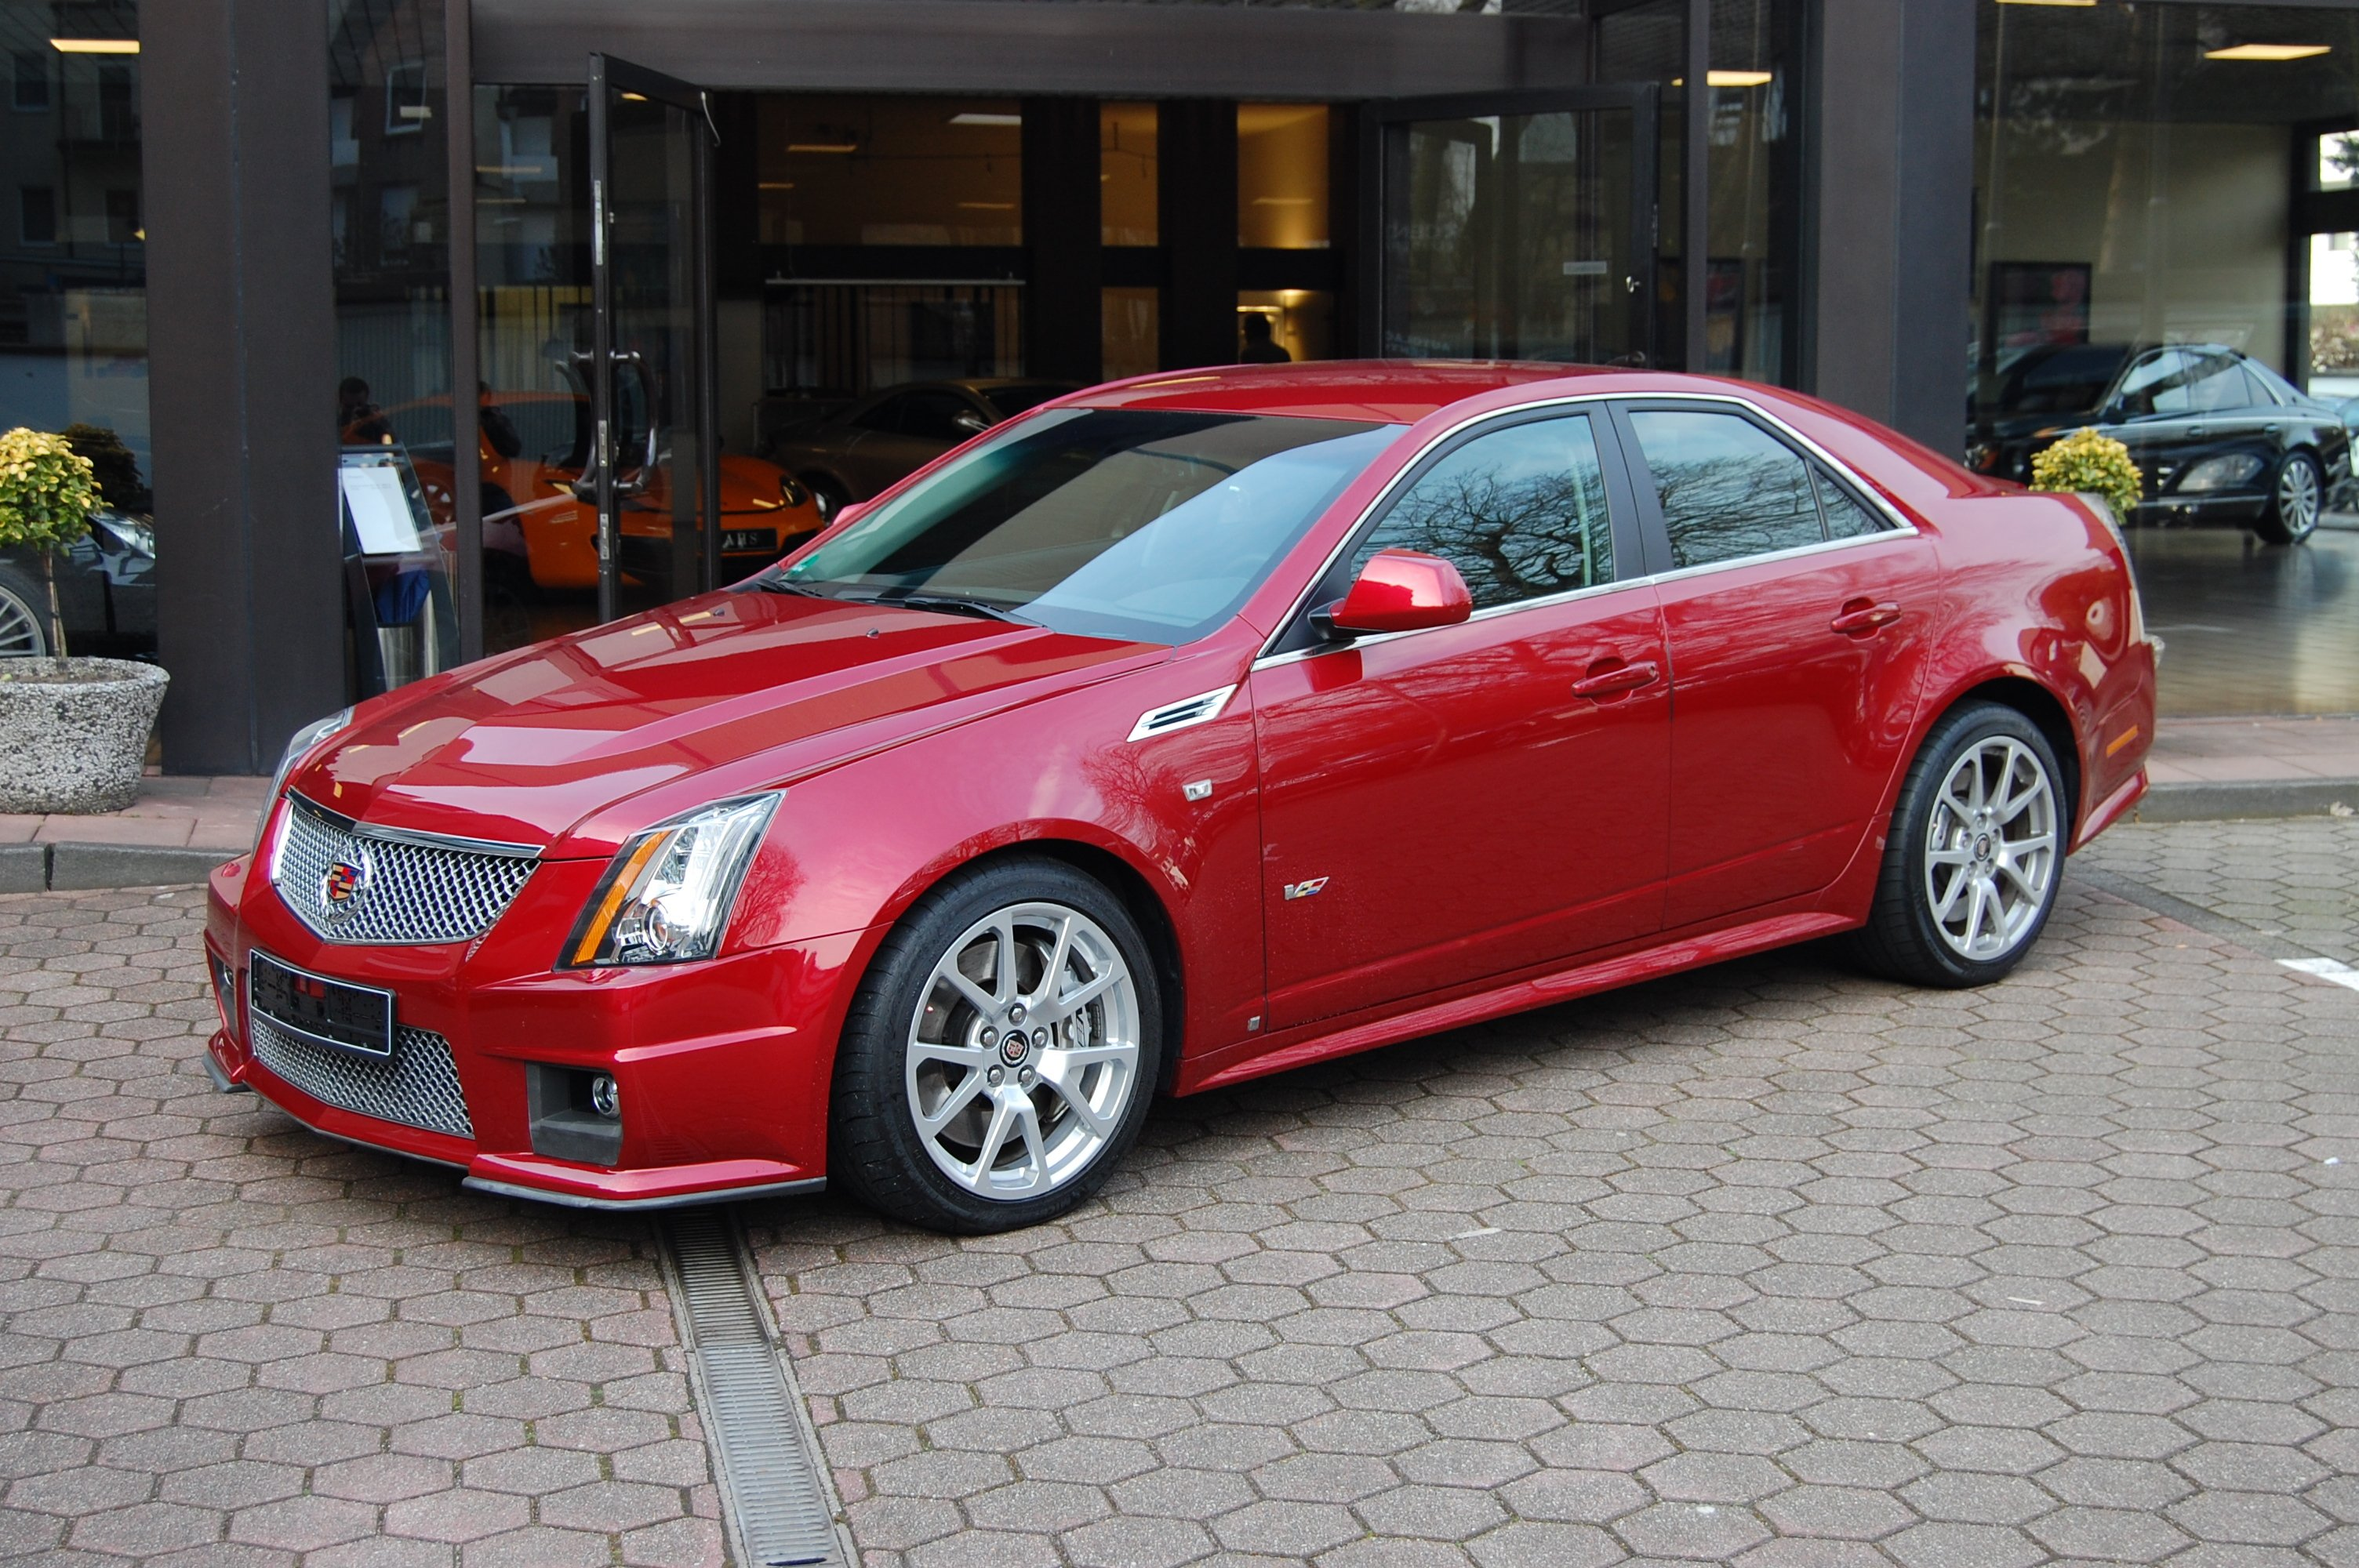 2010 cadillac cts v 6 2 supercharged europamodell cts luxury muscle d wallpaper 3008x2000. Black Bedroom Furniture Sets. Home Design Ideas